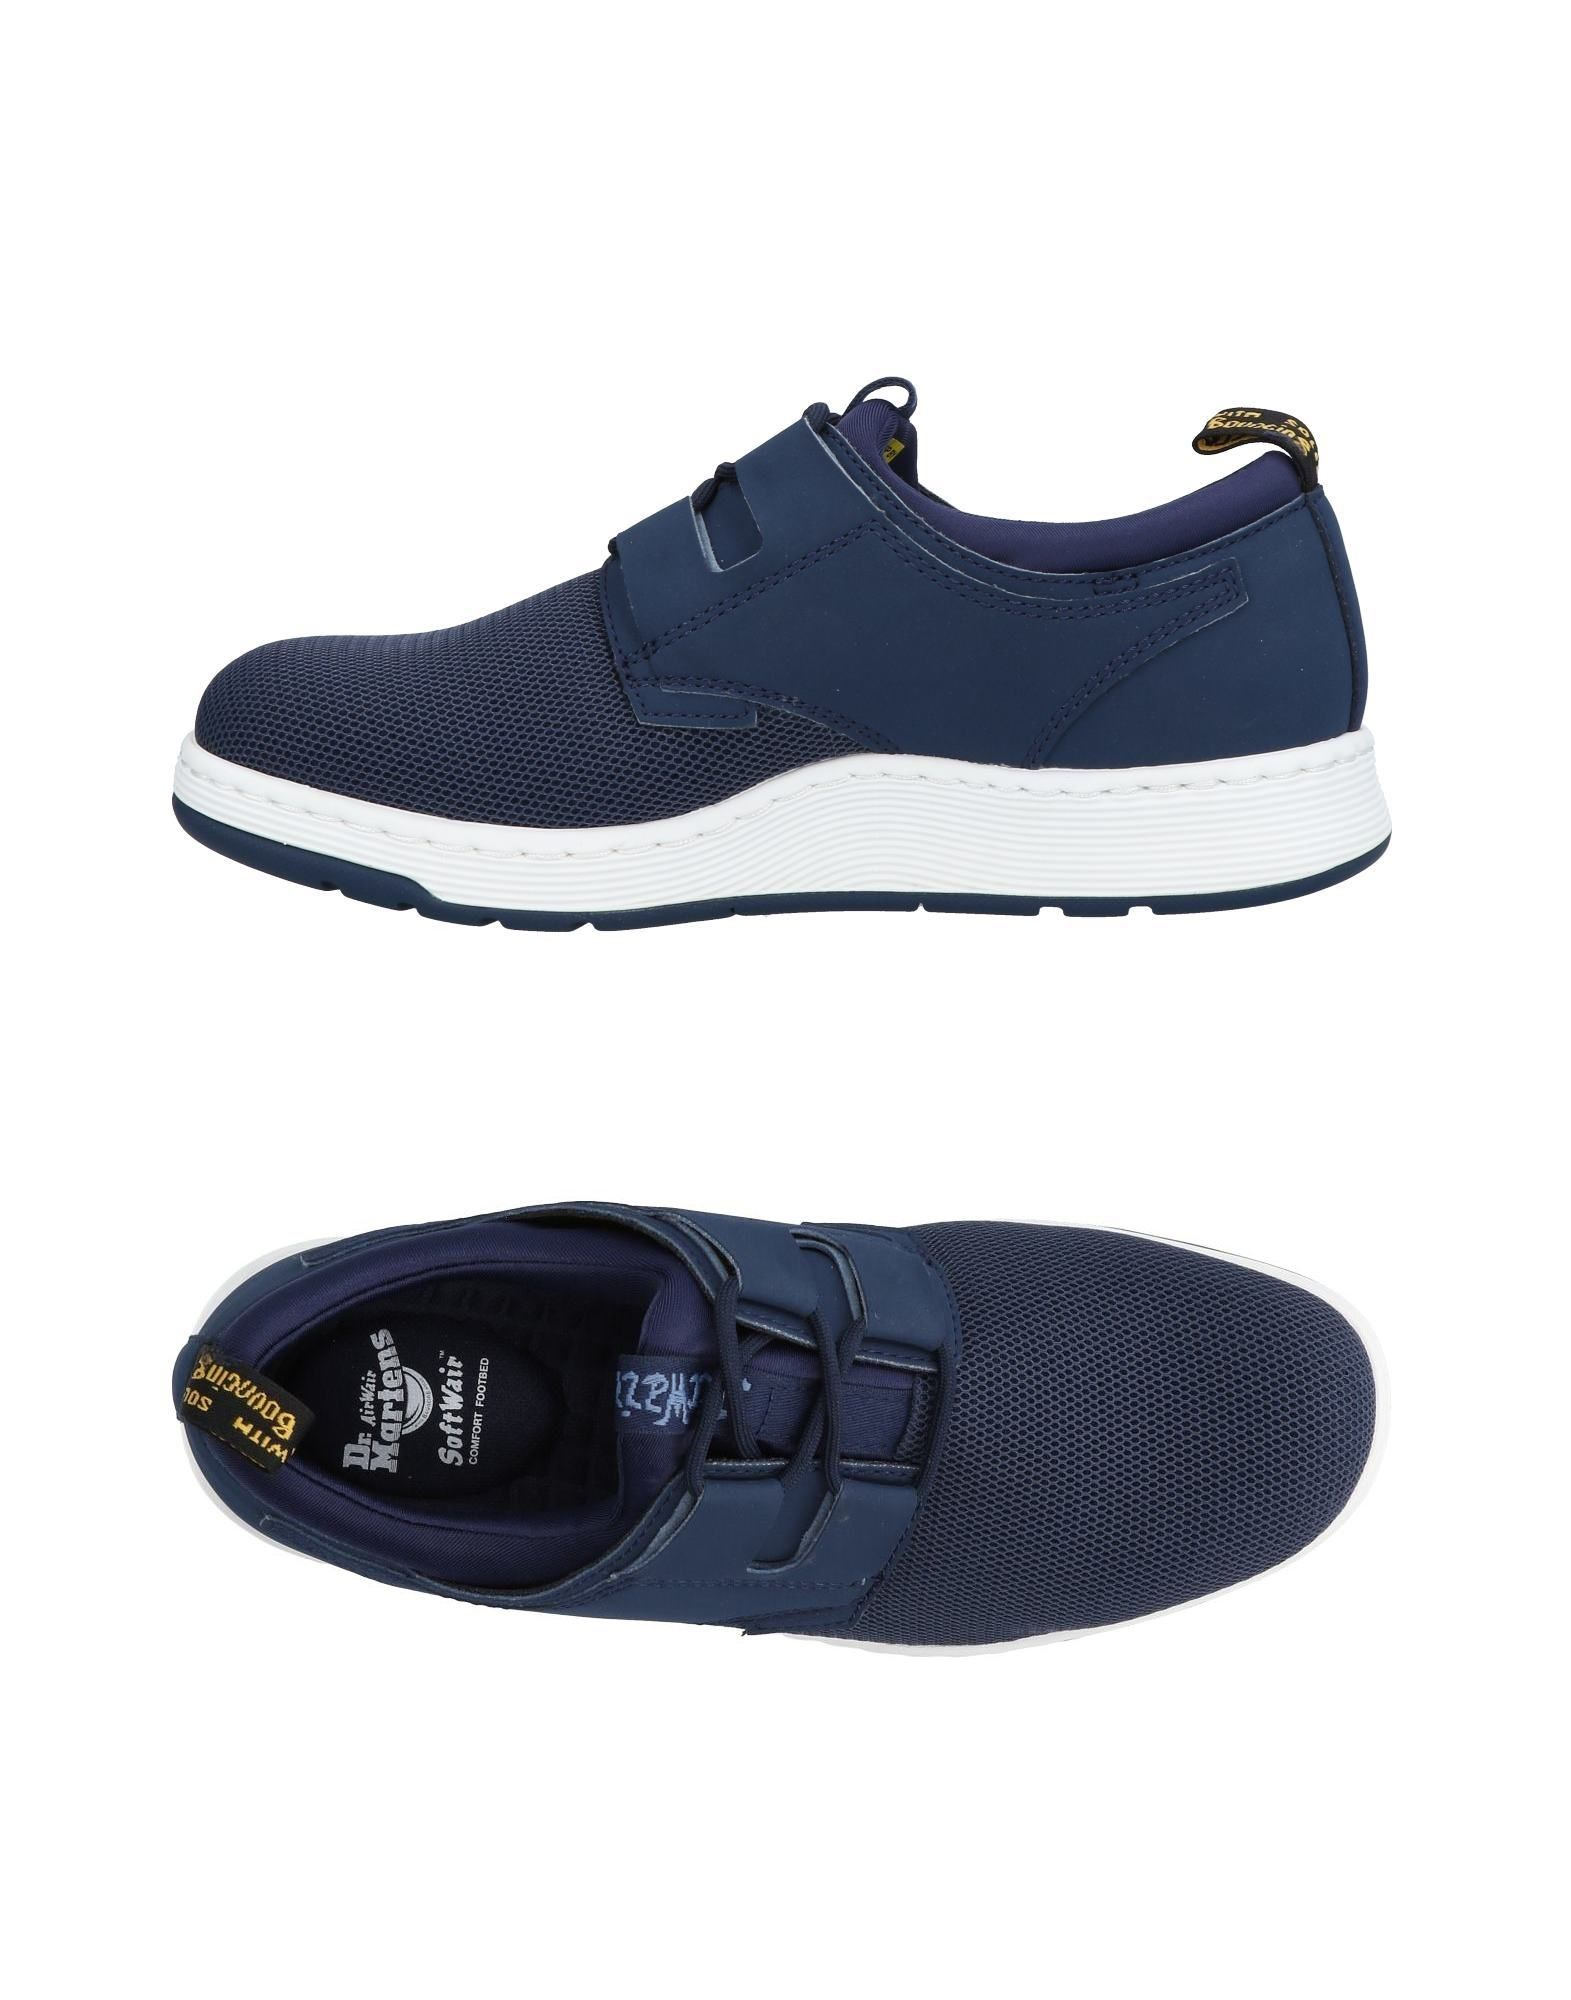 Sneakers Dr. Martens Donna - Acquista online su